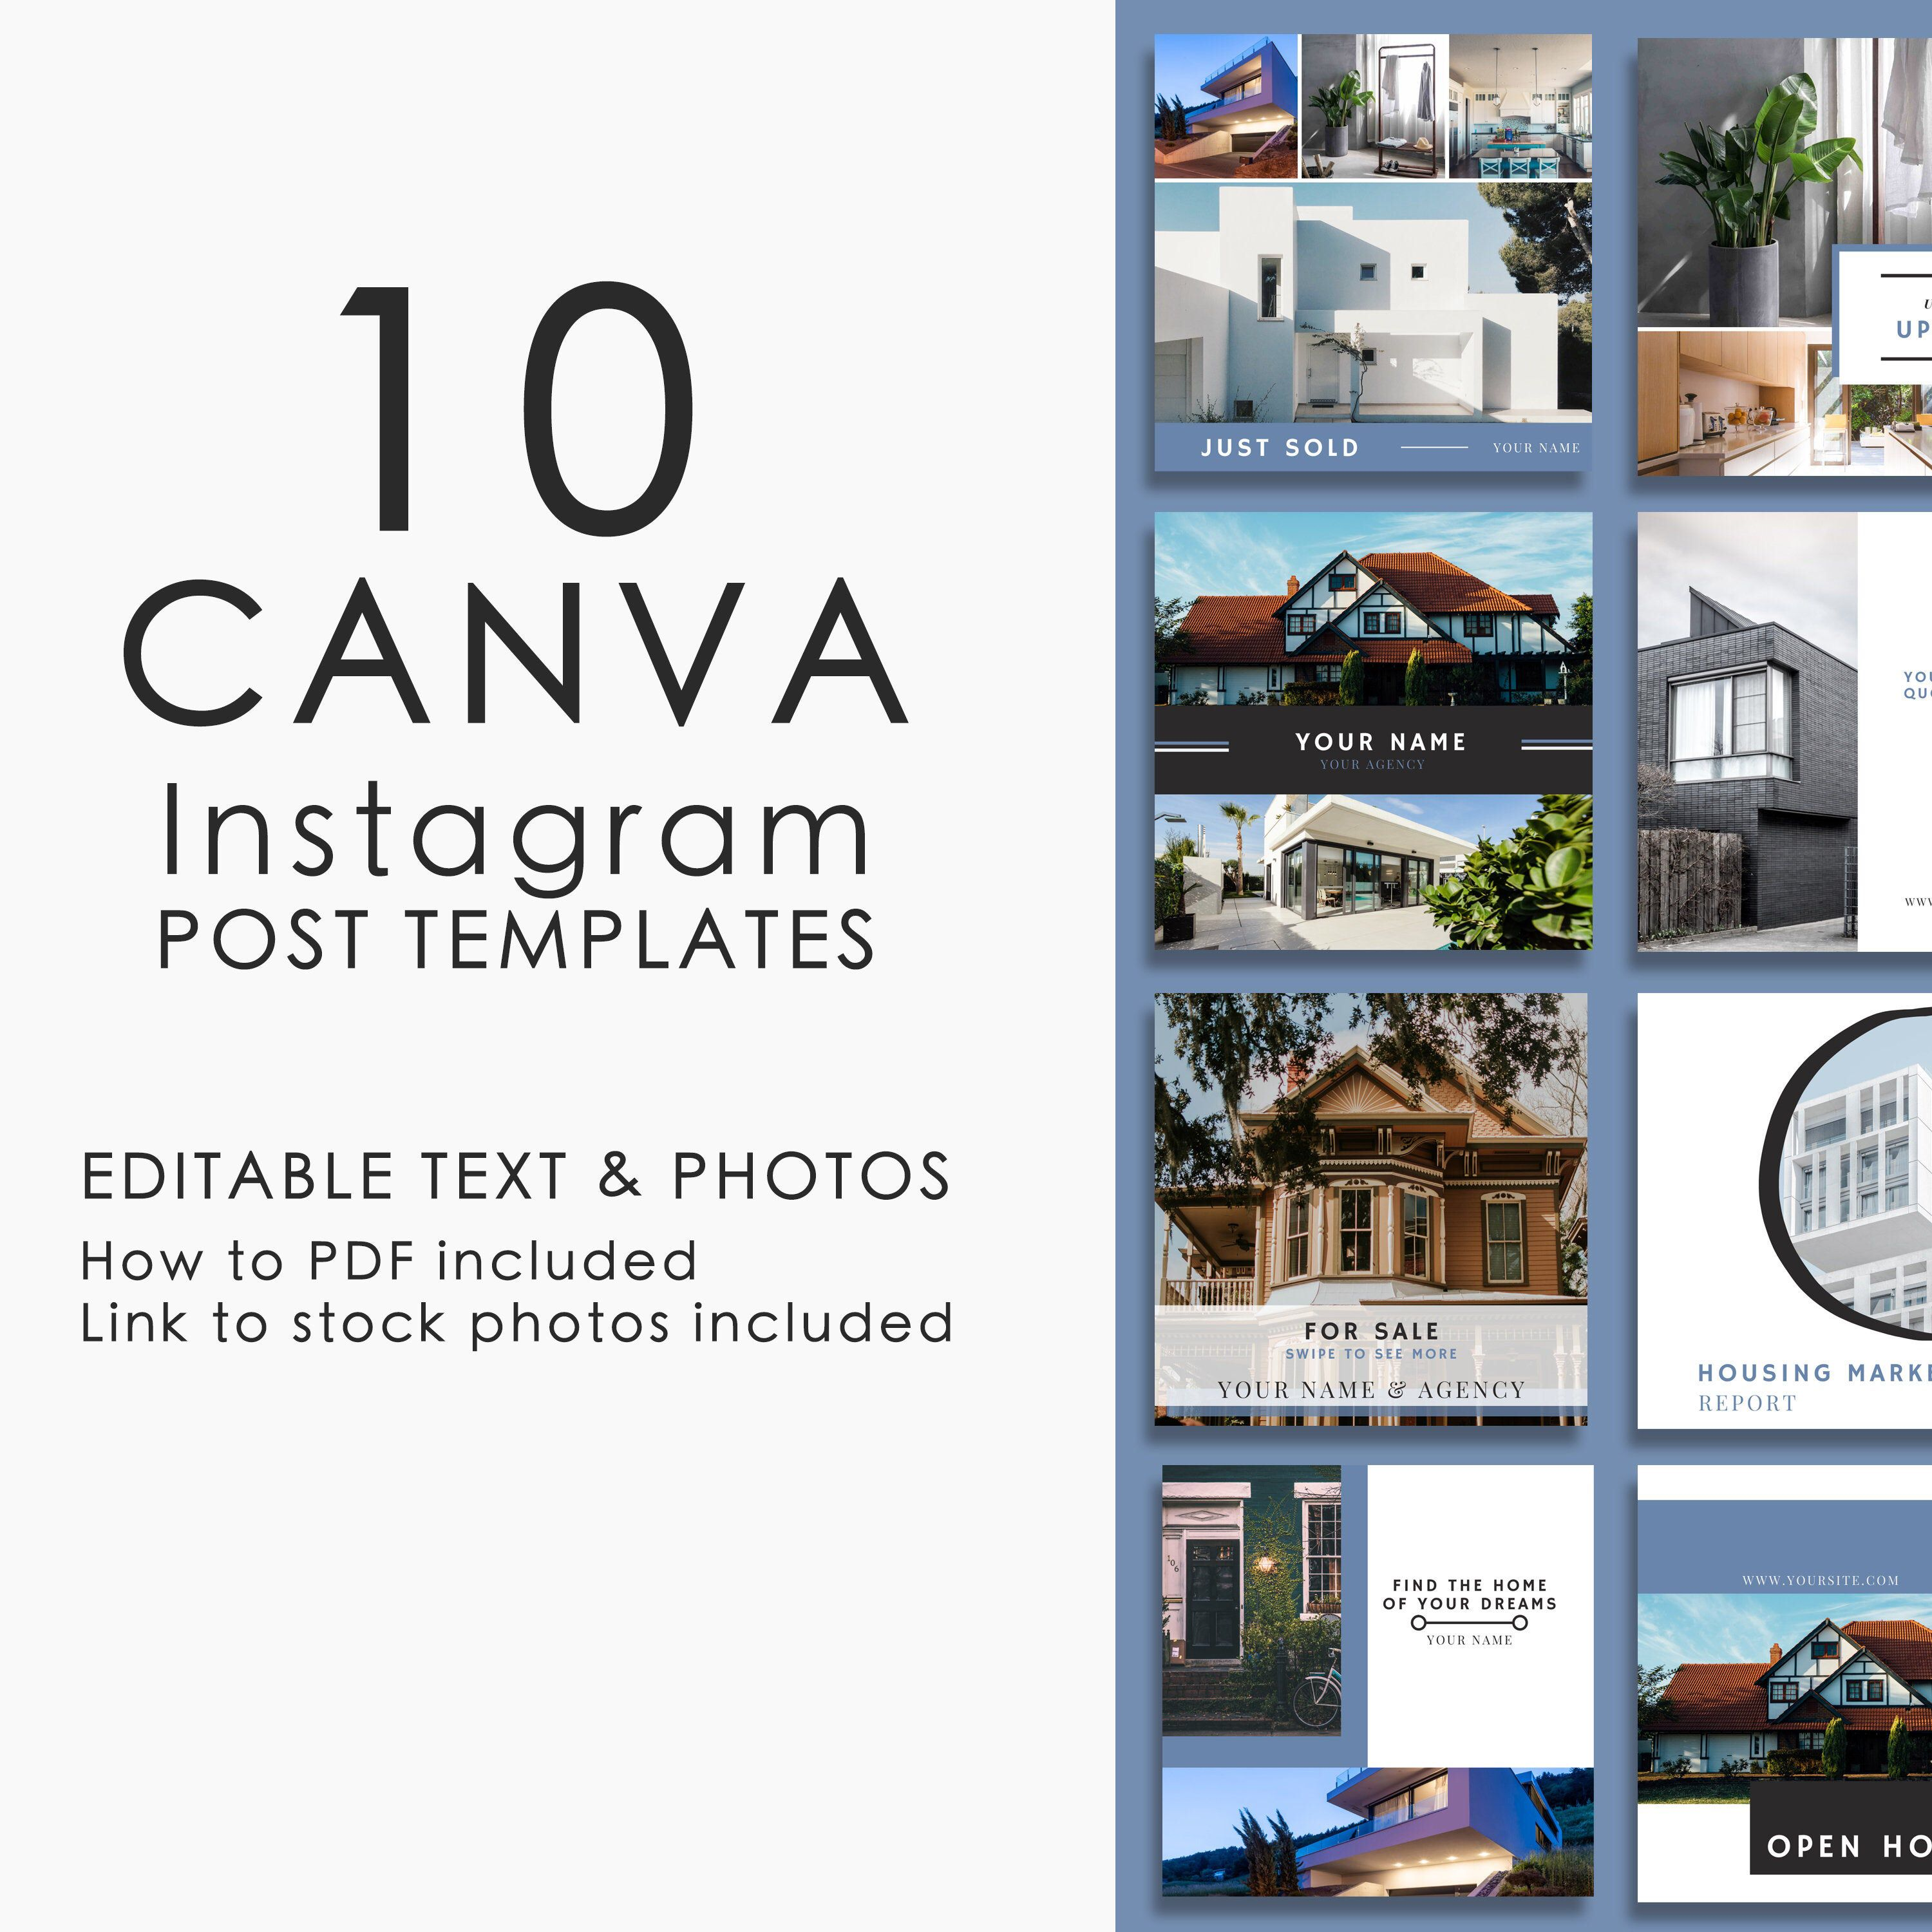 Real estate template, Marketing template, Canva template, Instagram graphics, Instagram template, Instagram feed, Social media kit